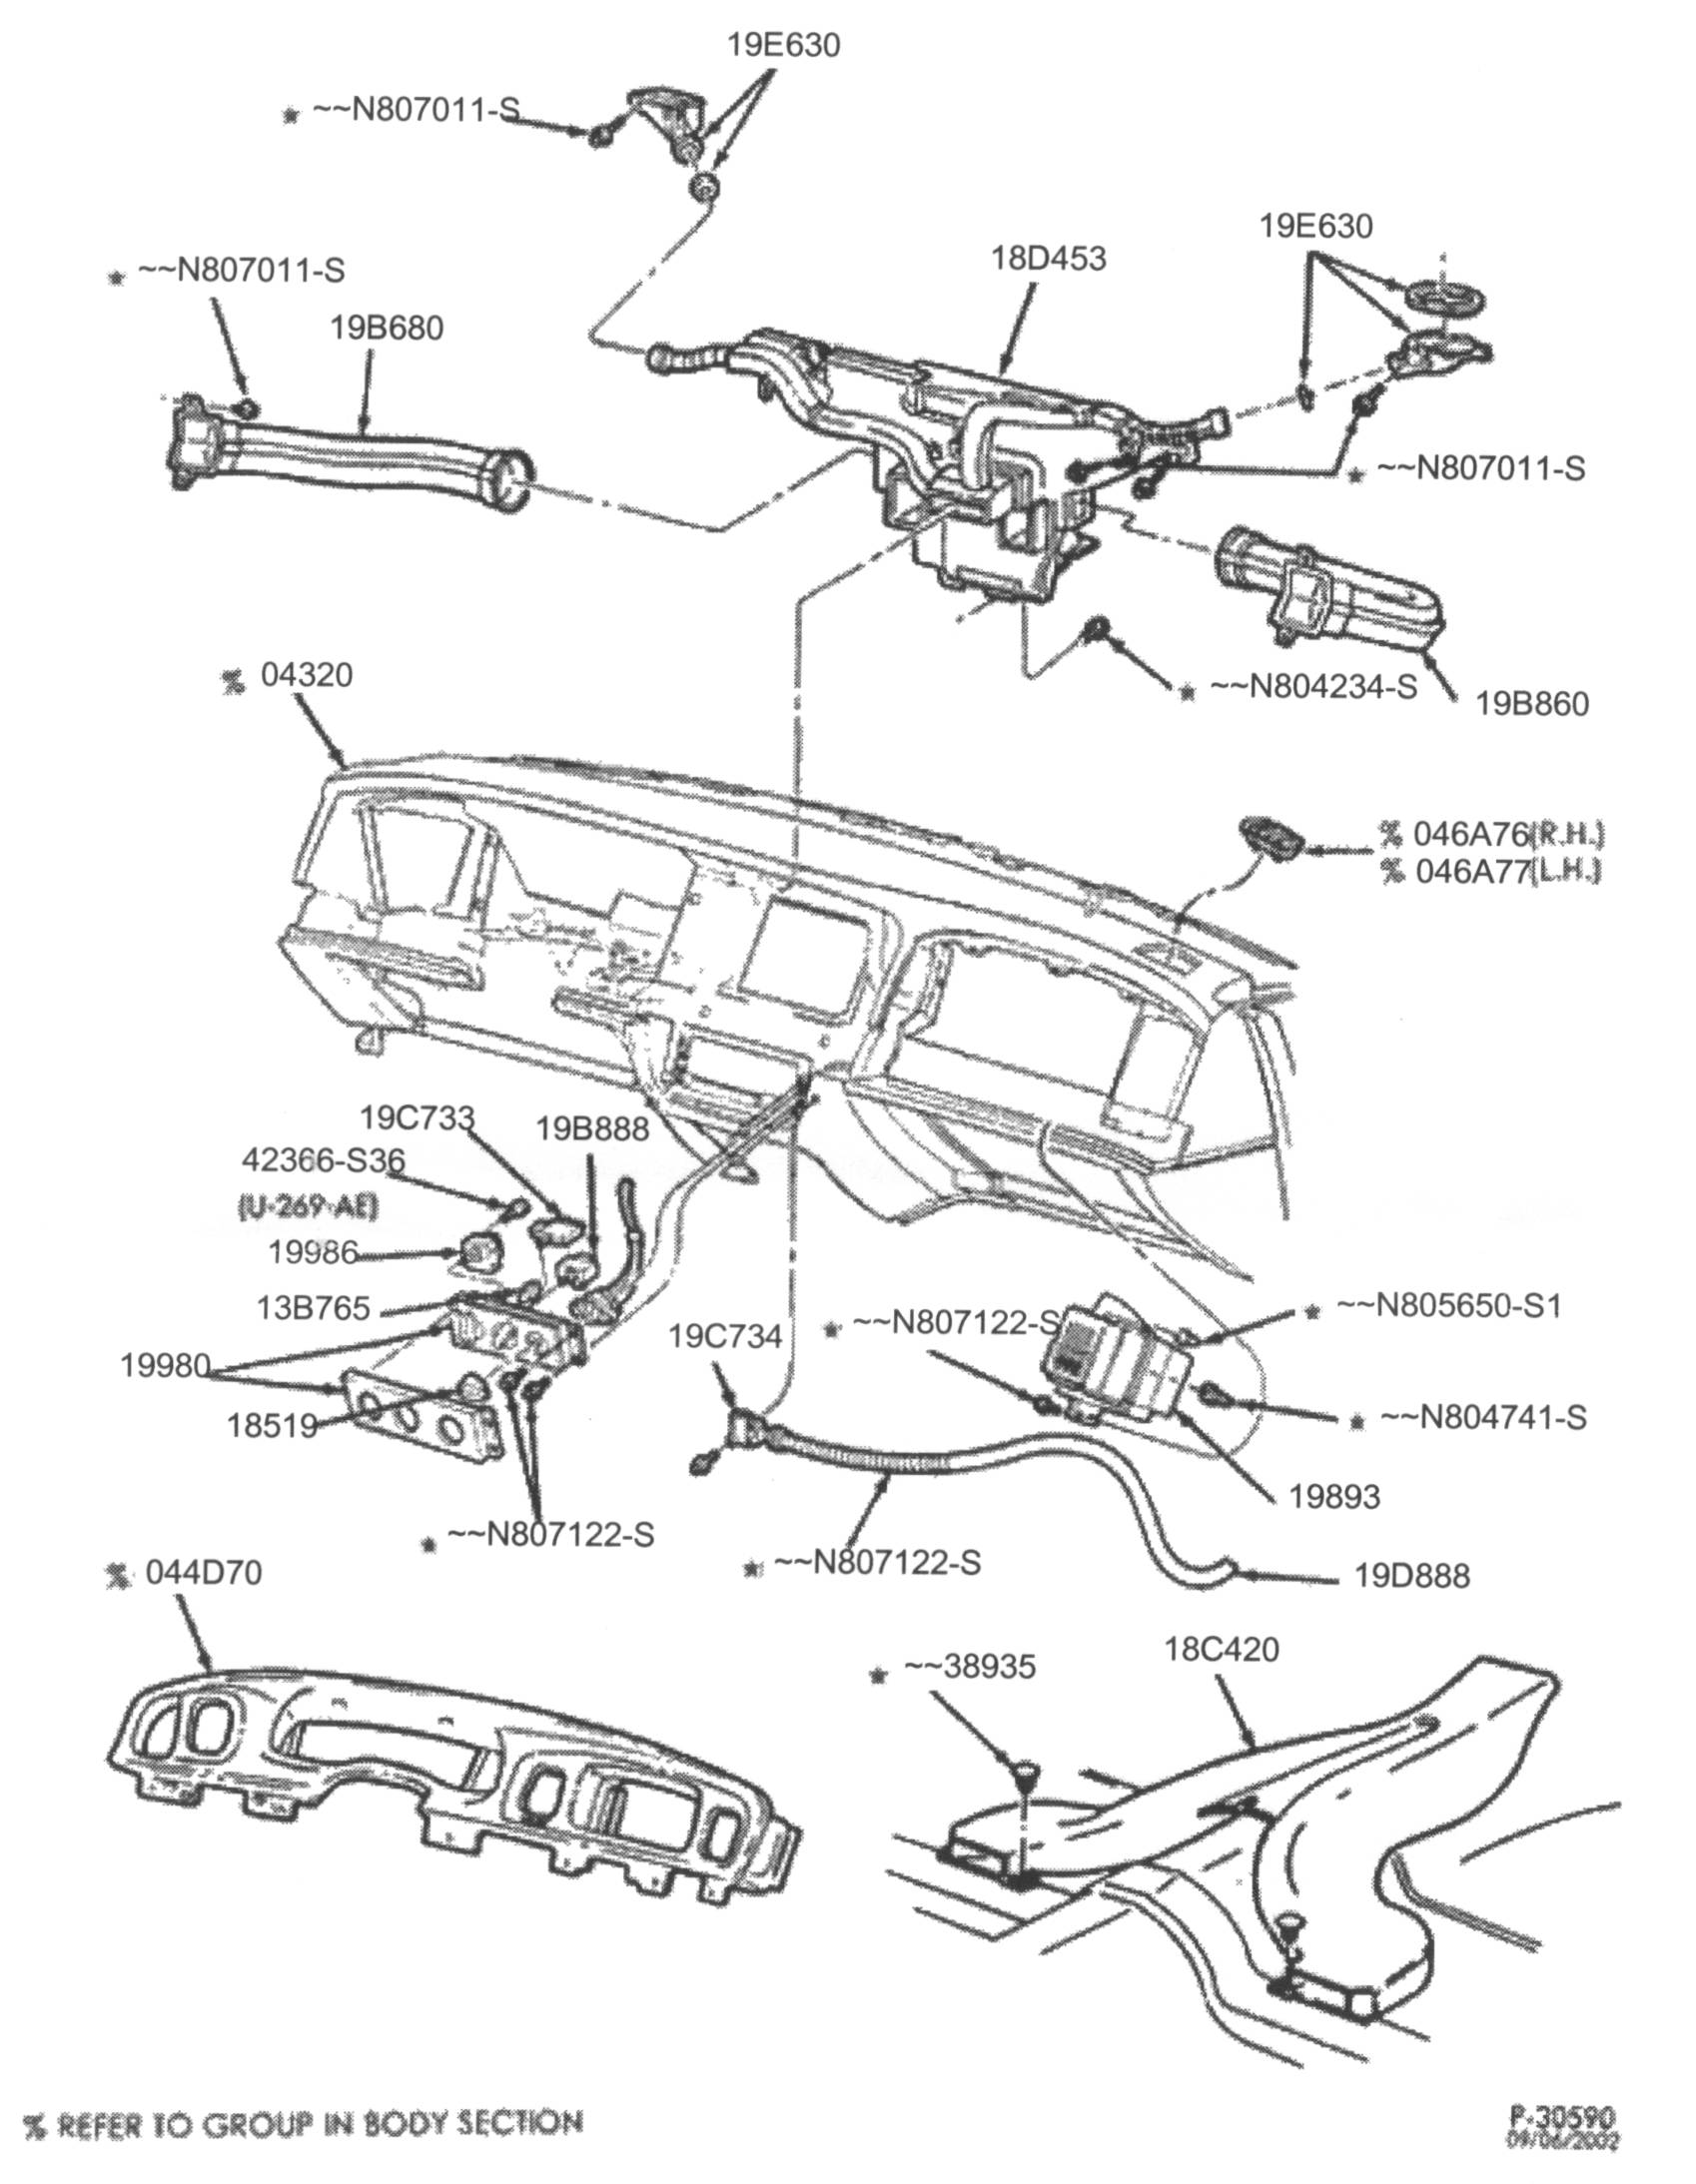 ford crown victoria stereo radio installation tidbits 2001 Ford Focus Wiring Diagram some vic owners prefer to keep the factory look to their stereo install a few have swapped in radios from other ford vehicles such as ford explorers